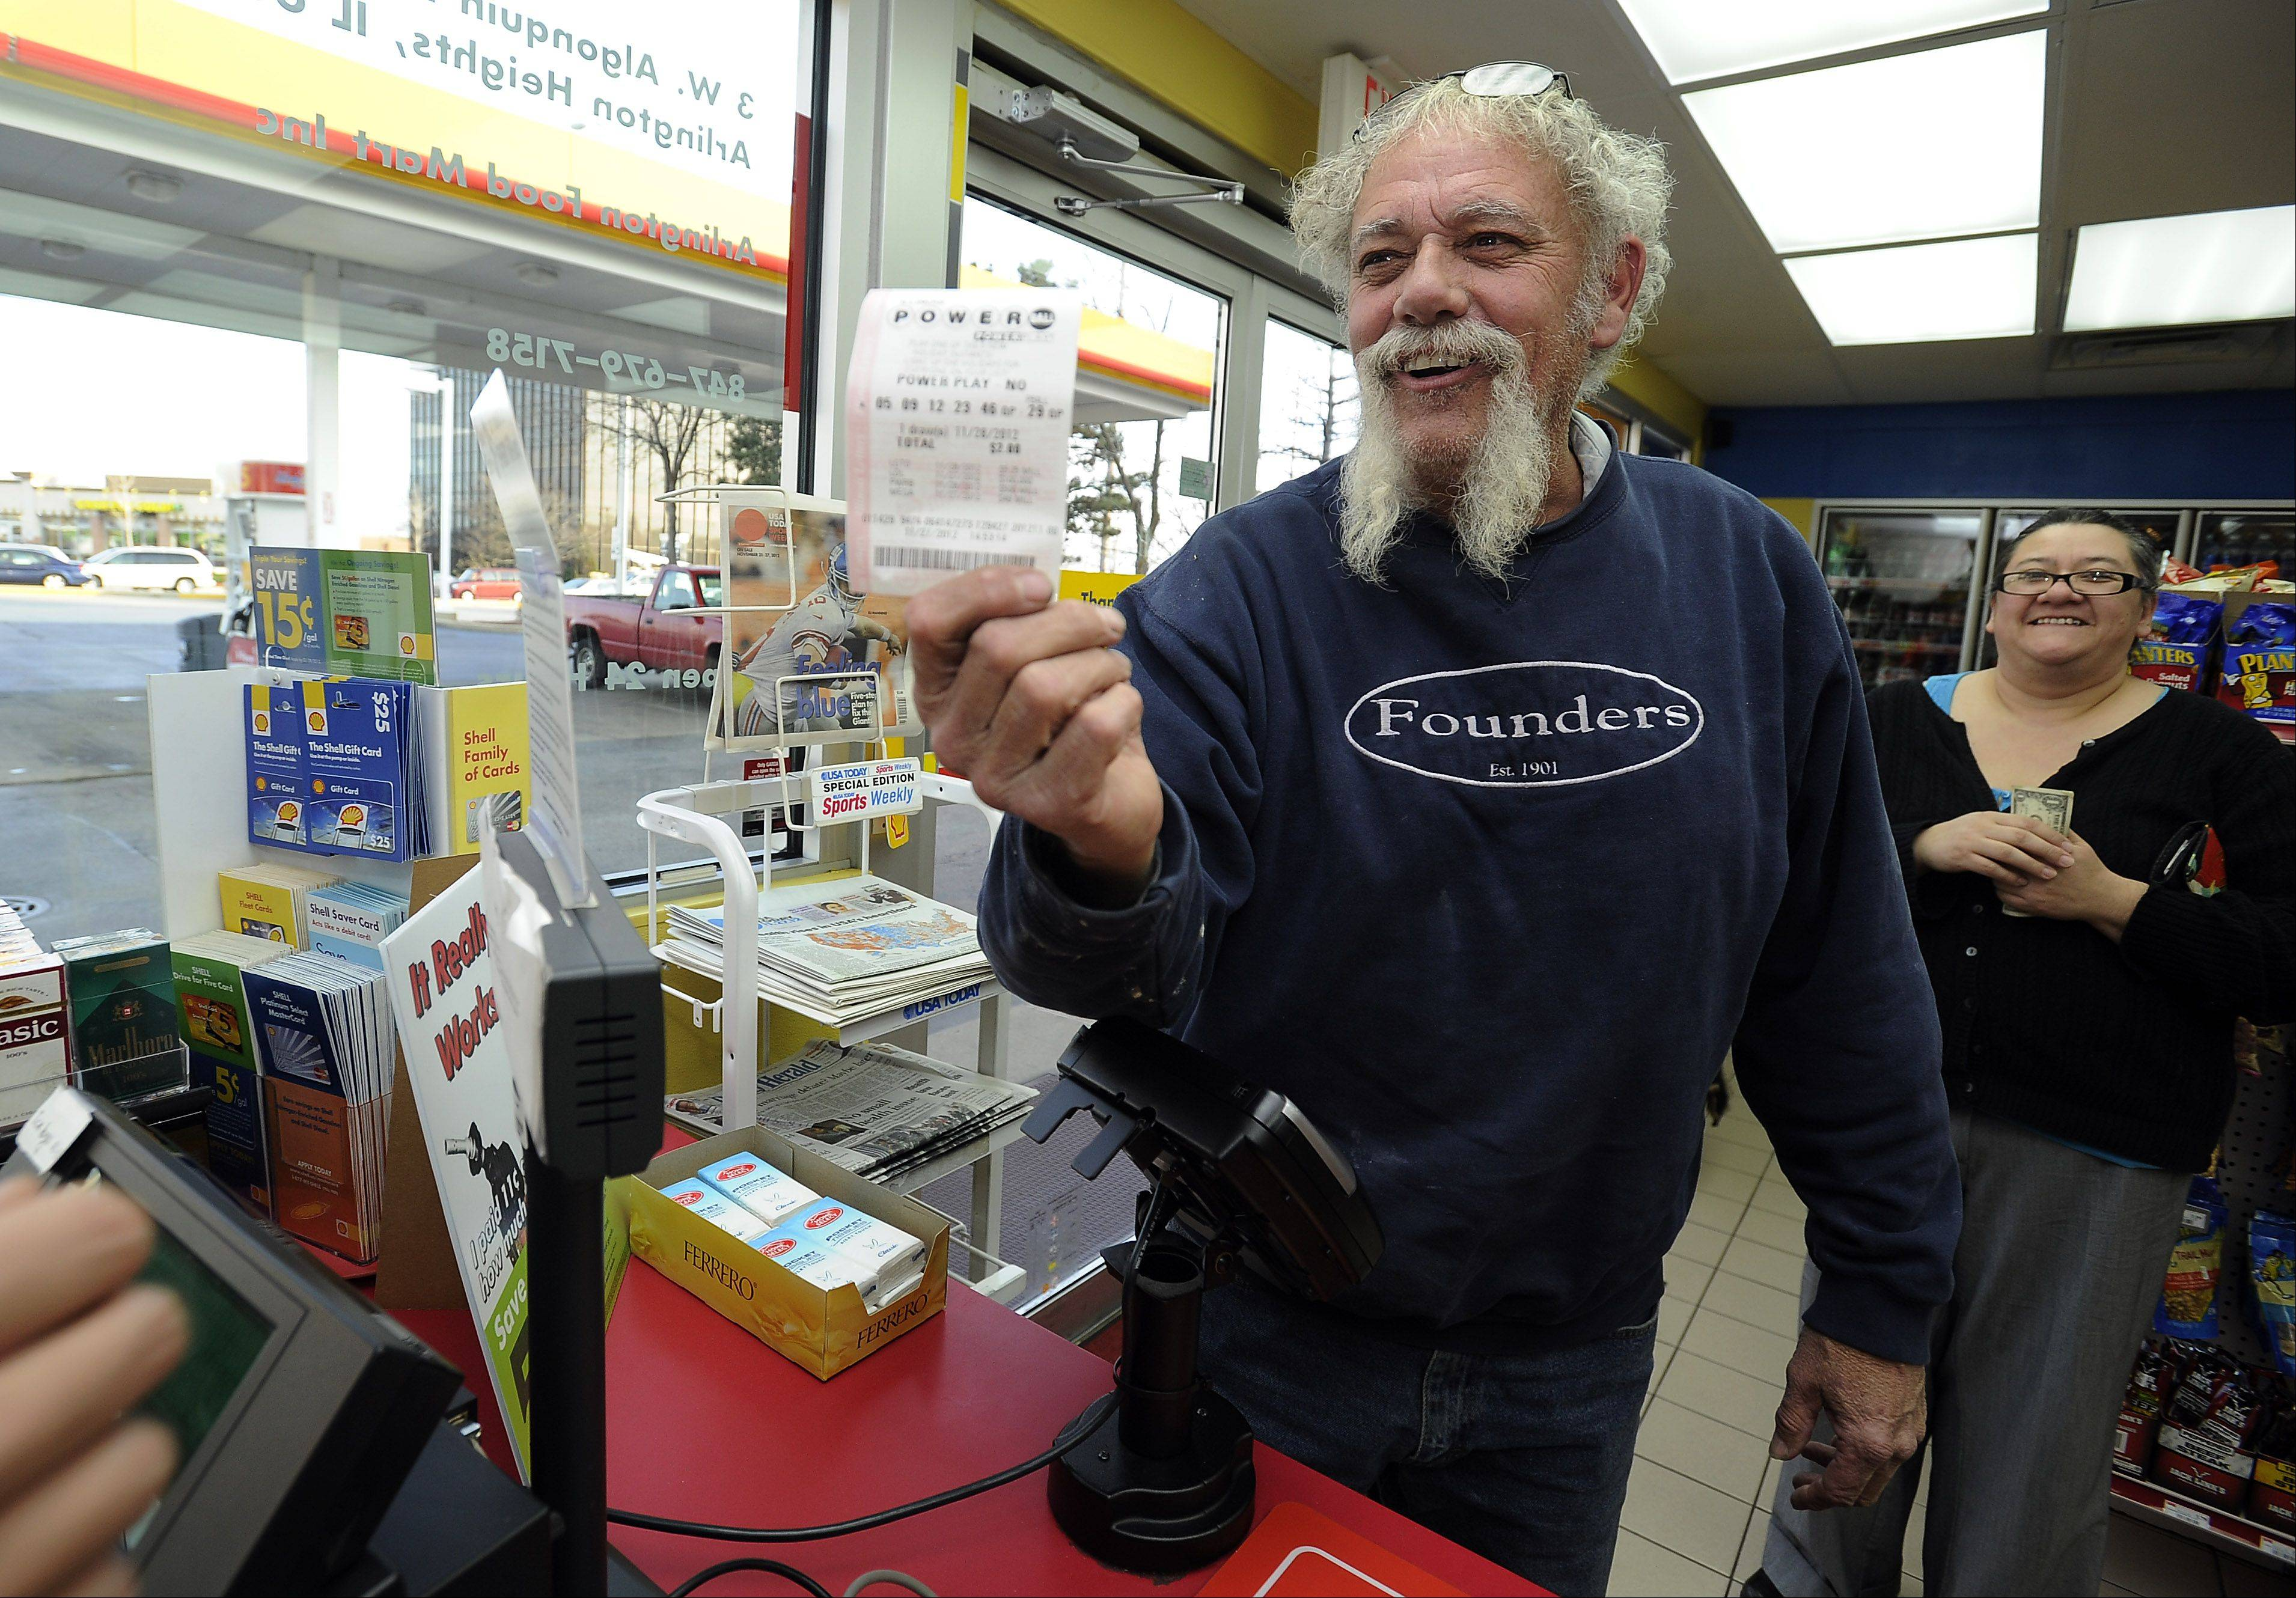 Mark Welsh/mwelsh@dailyherald.comDoug O'Keefe of Arlington Heights just purchased his 425 million powerball winning ticket, (he hopes) from Shell gas station clerk Marko Stojiljkovic on Tuesday, one day before the big drawing.